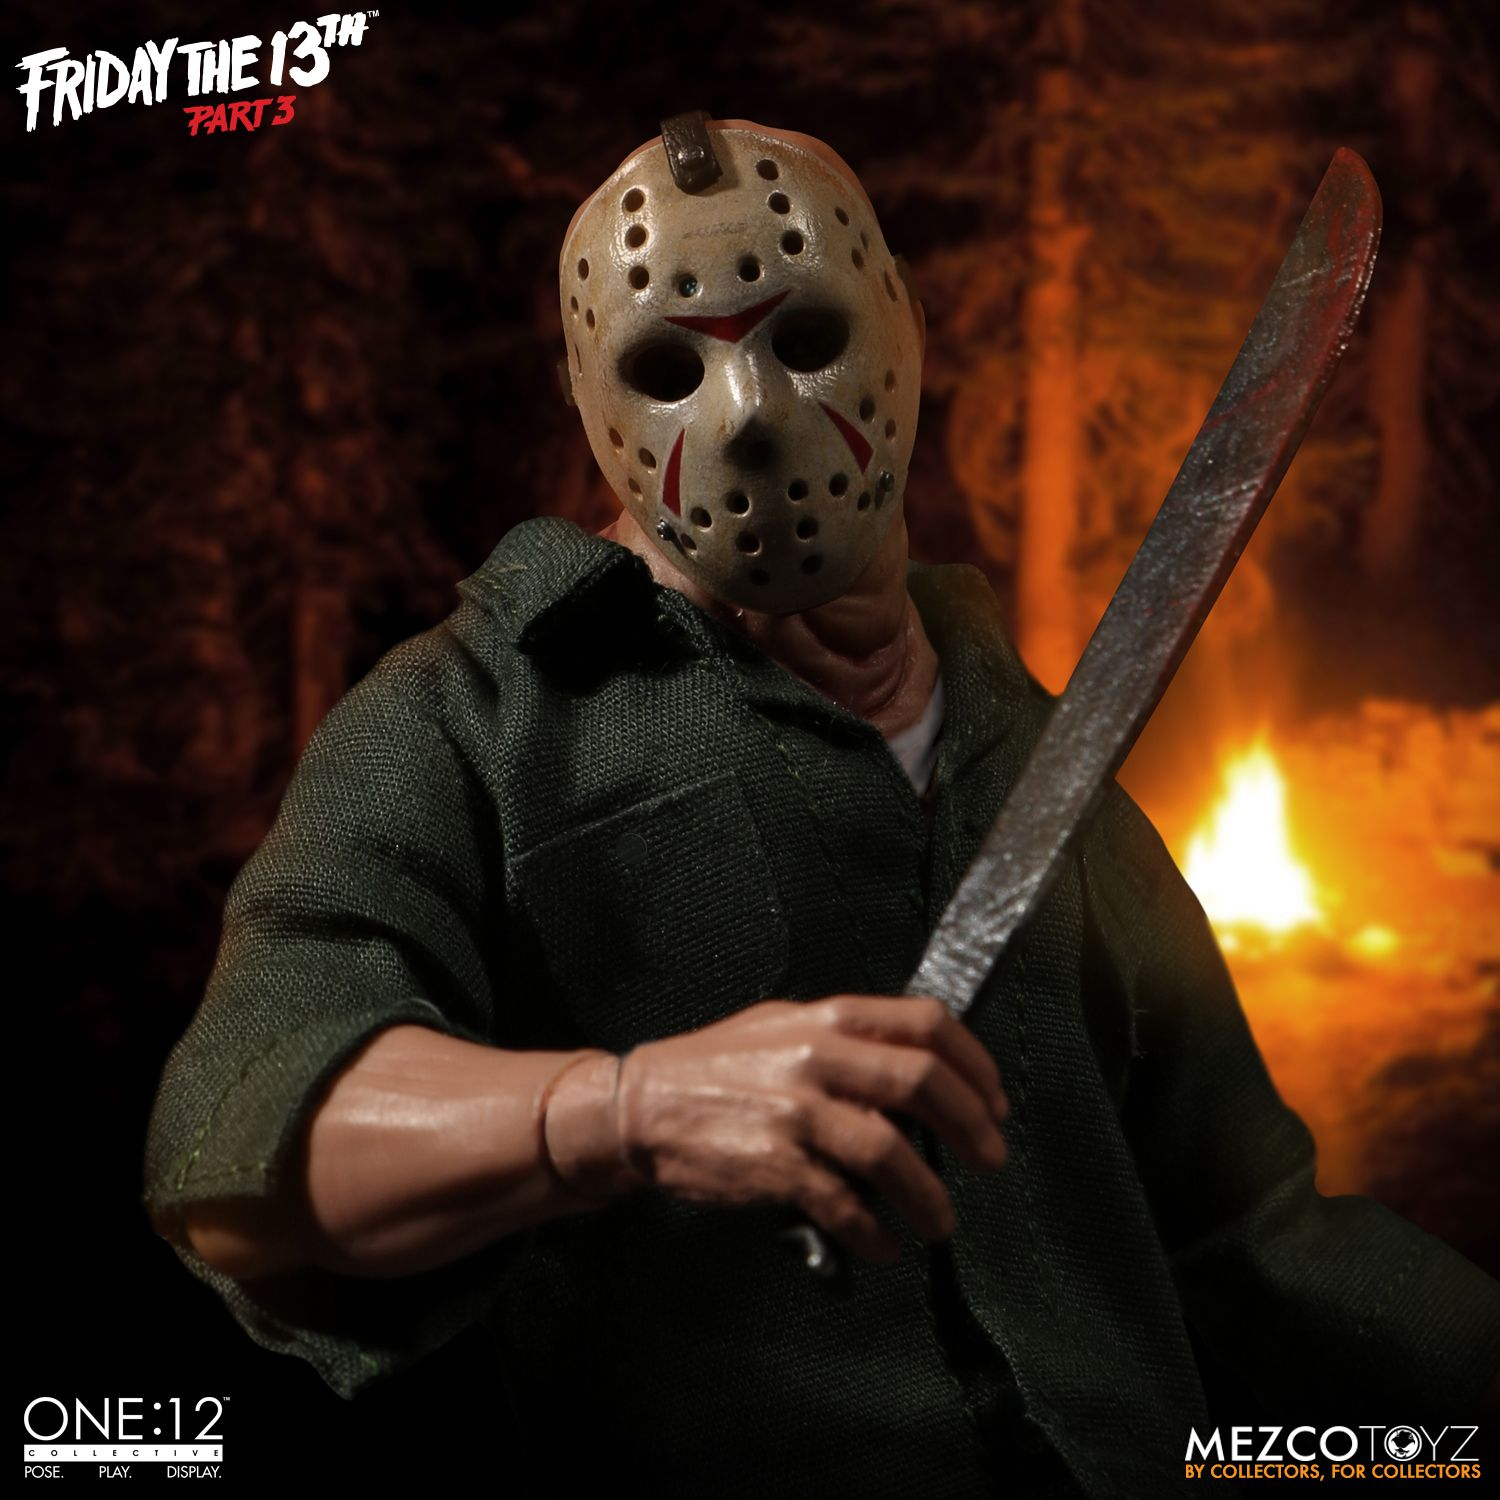 Mezco Toyz One:12 Collective Friday The 13th Part 3 Jason Voorhees Figure